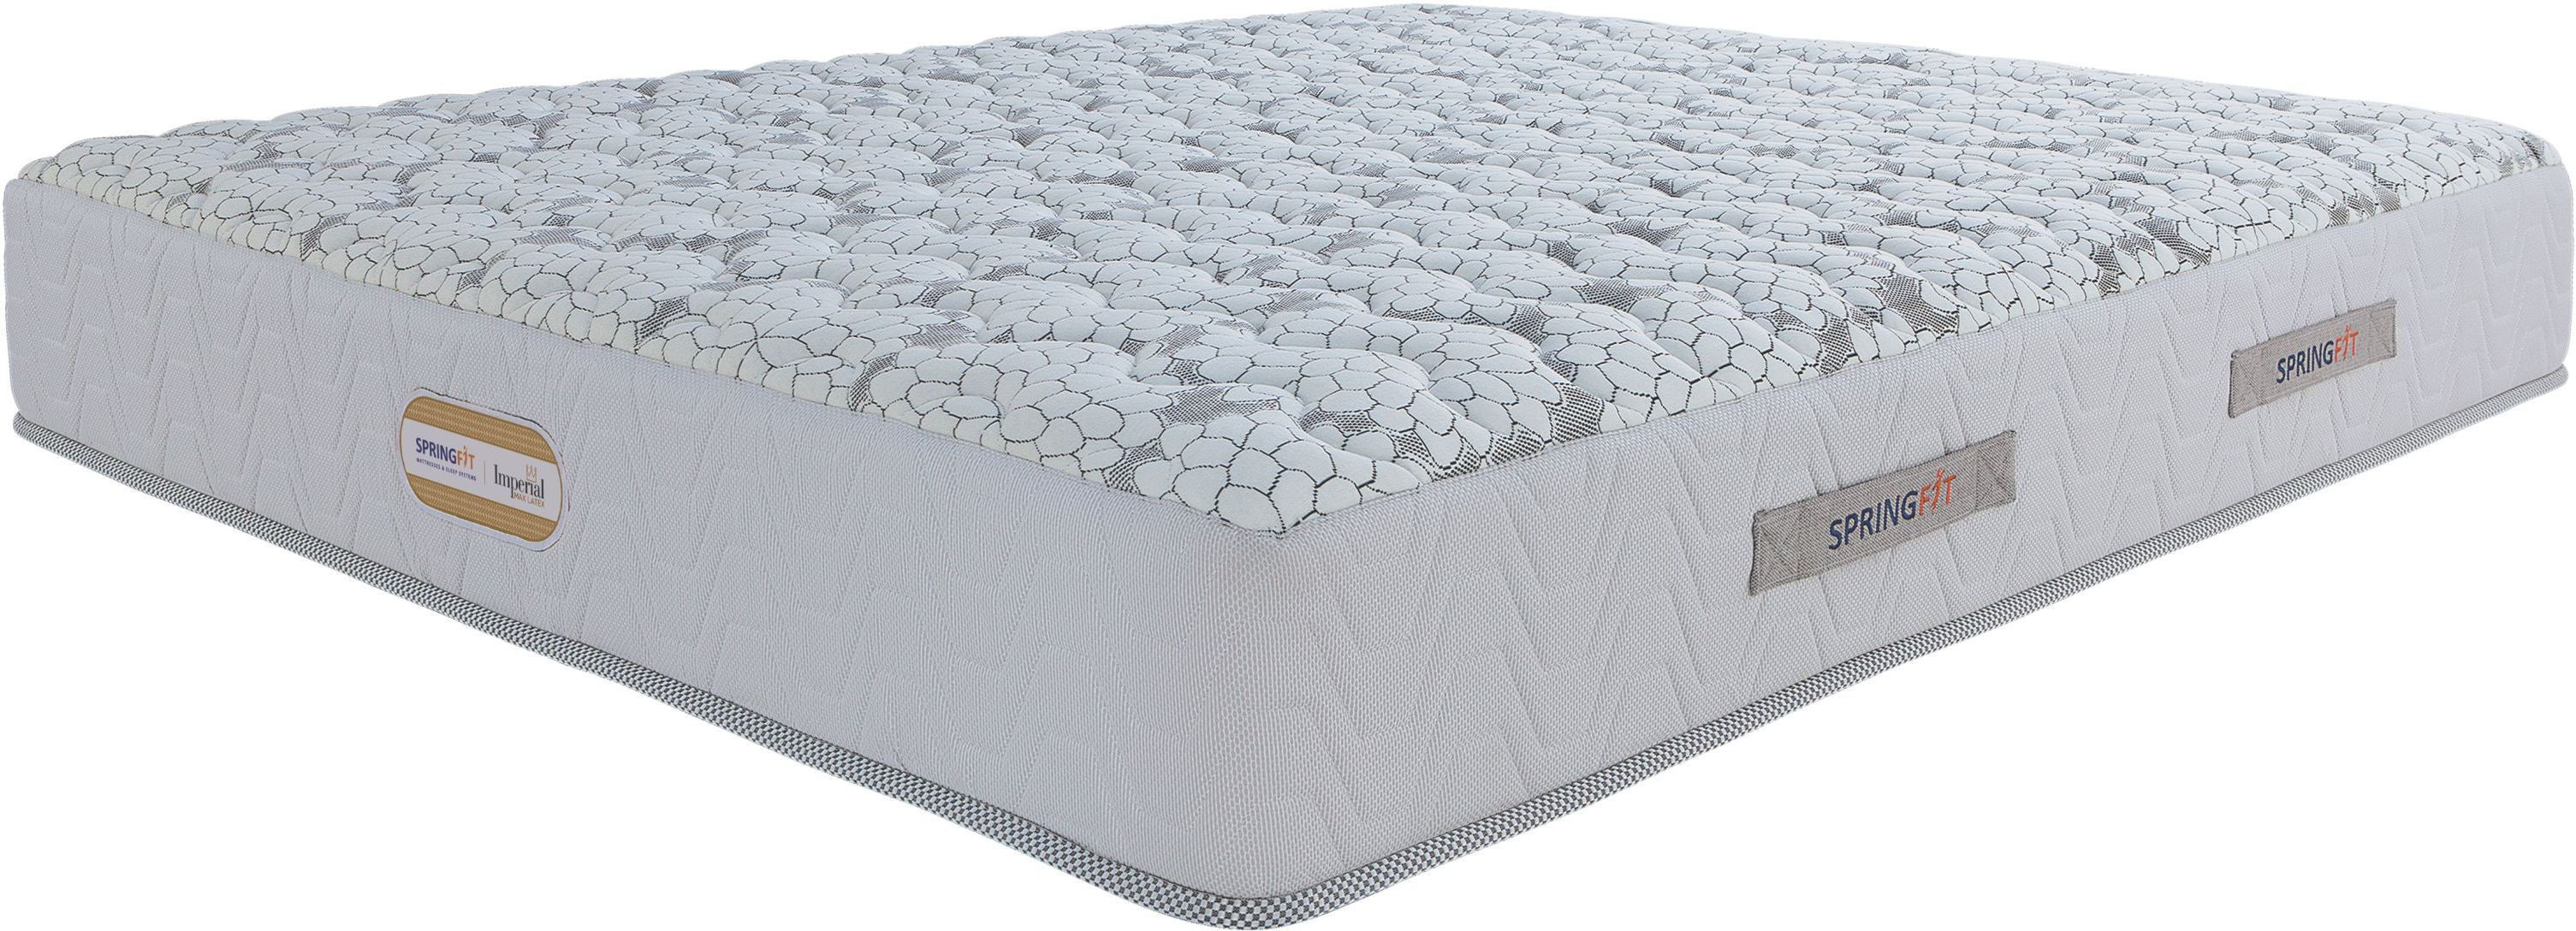 View Springfit IMAXLATEX 5 inch Queen High Resilience (HR) Foam Mattress Furniture (Springfit)